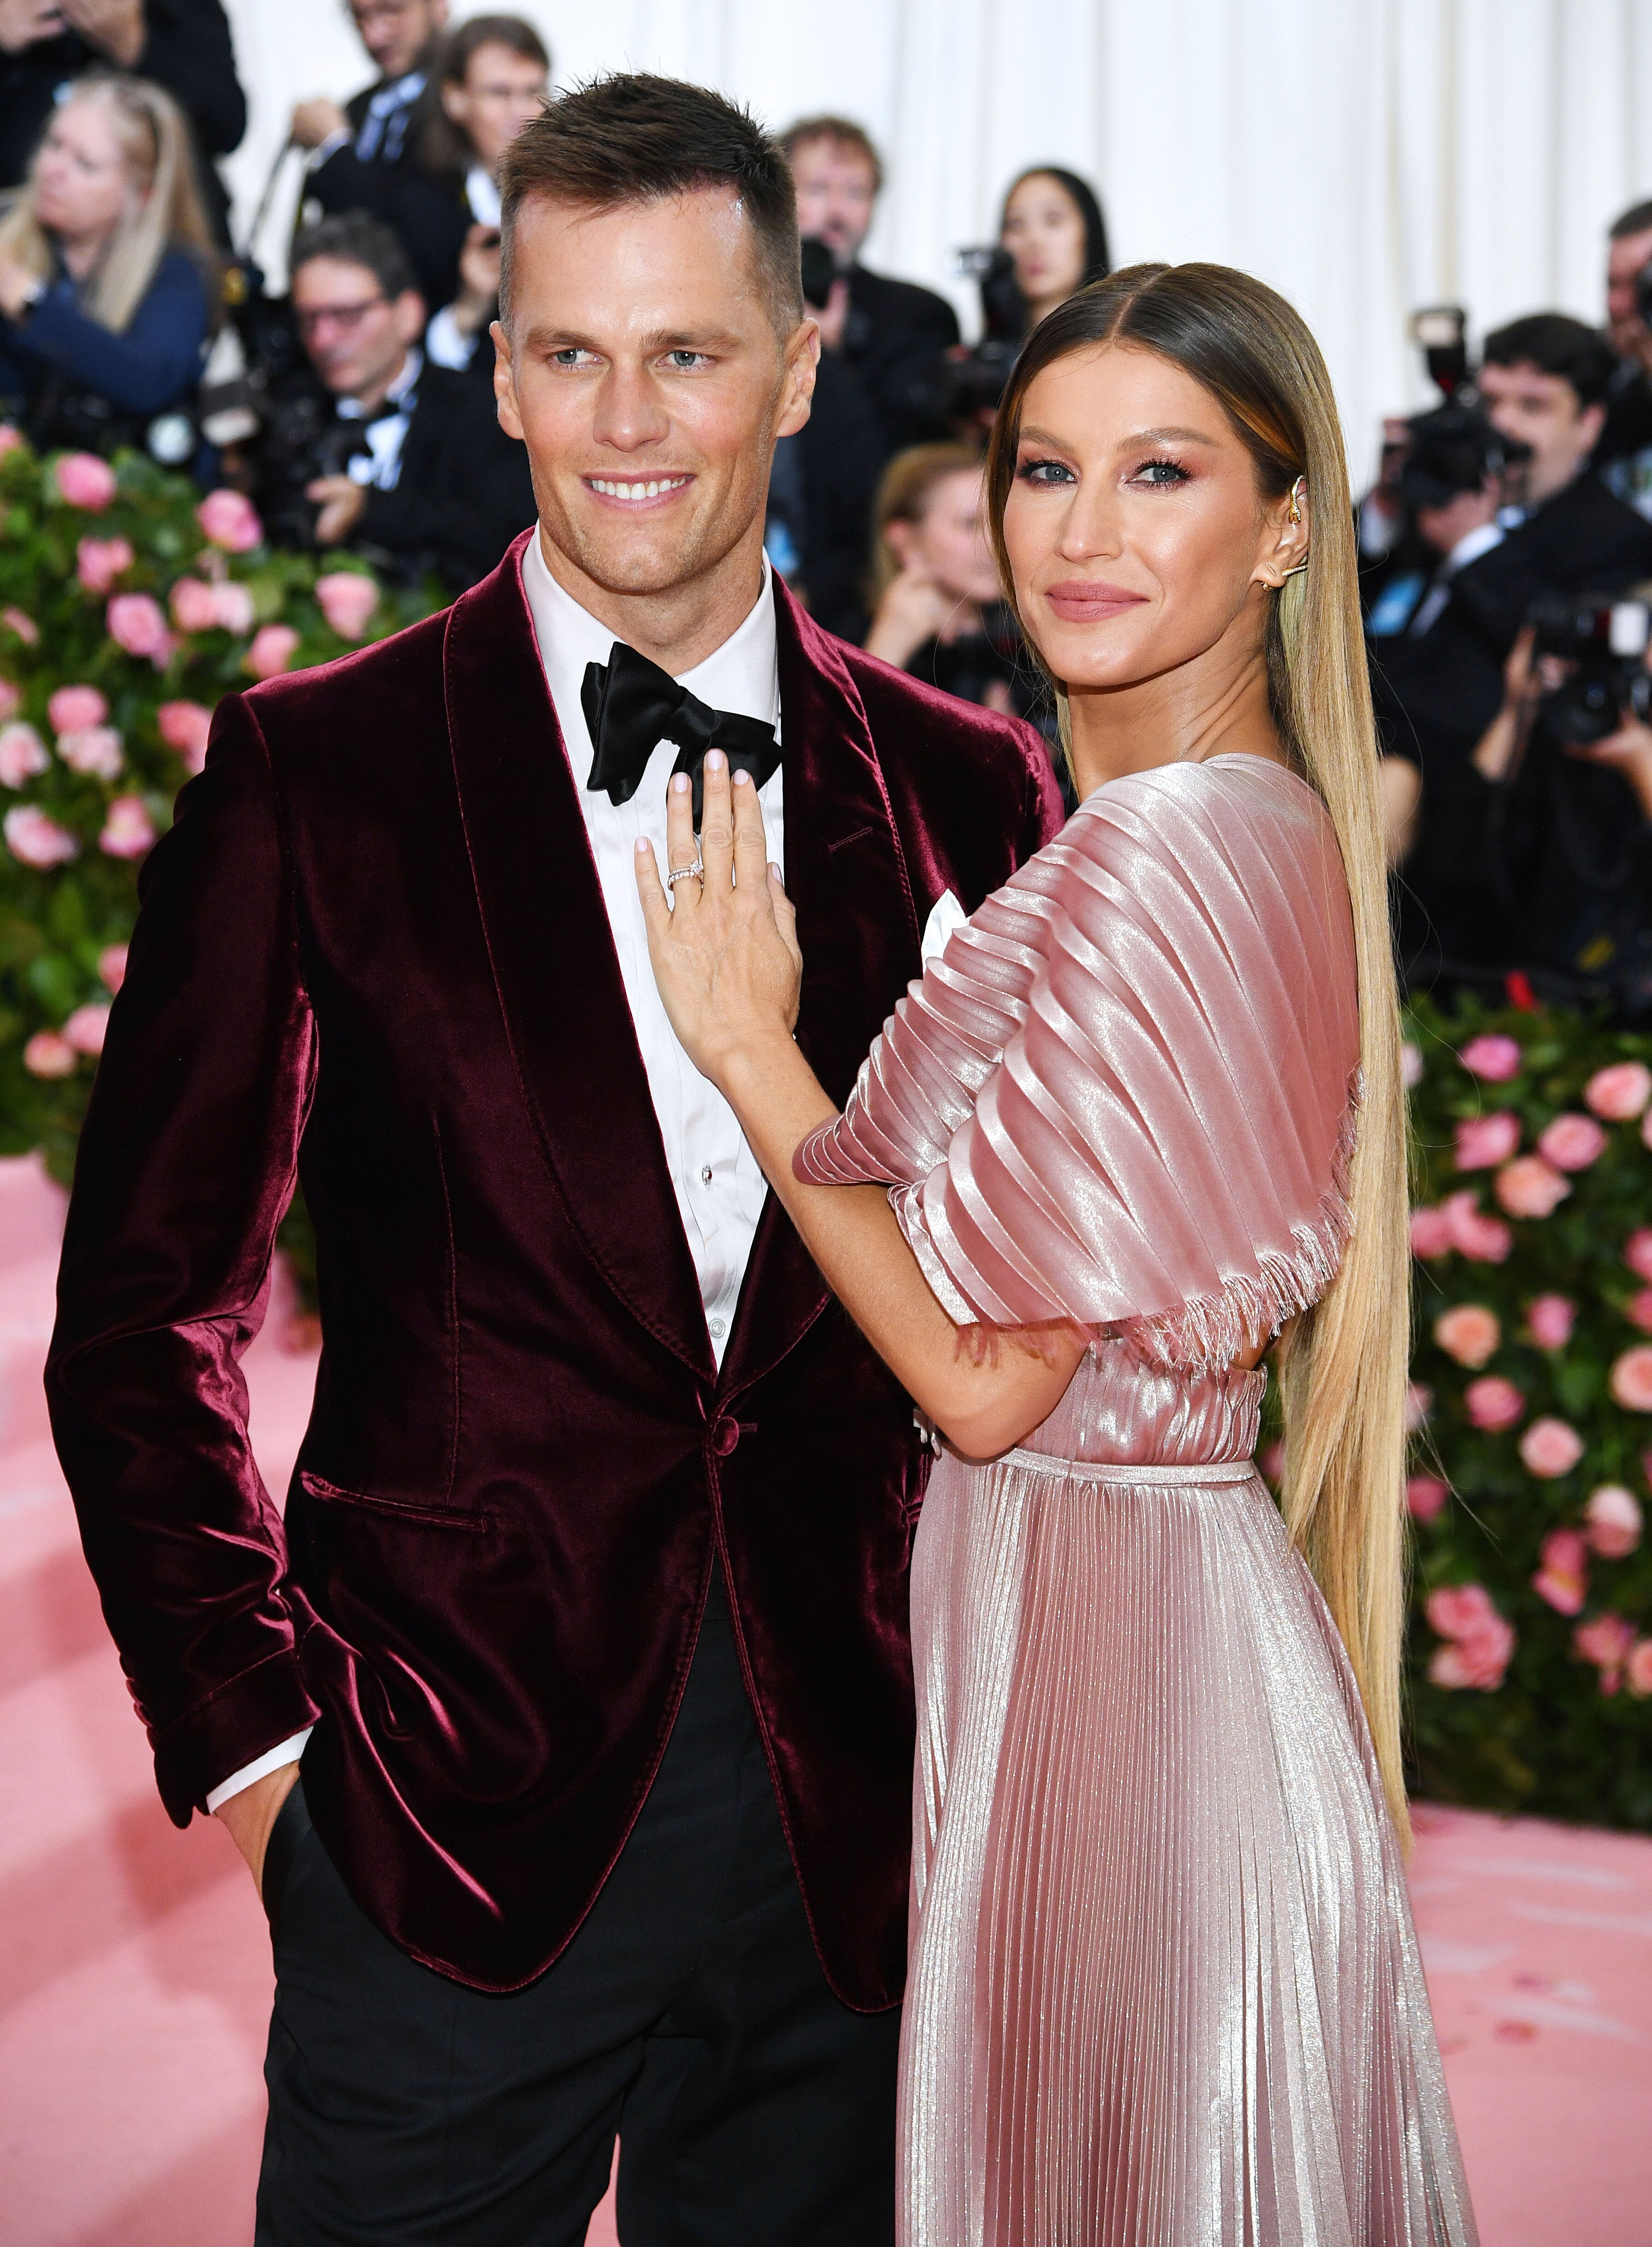 Gisele Bündchen and Tom Brady at the 2019 Met Gala in New York | Photo: Getty Images